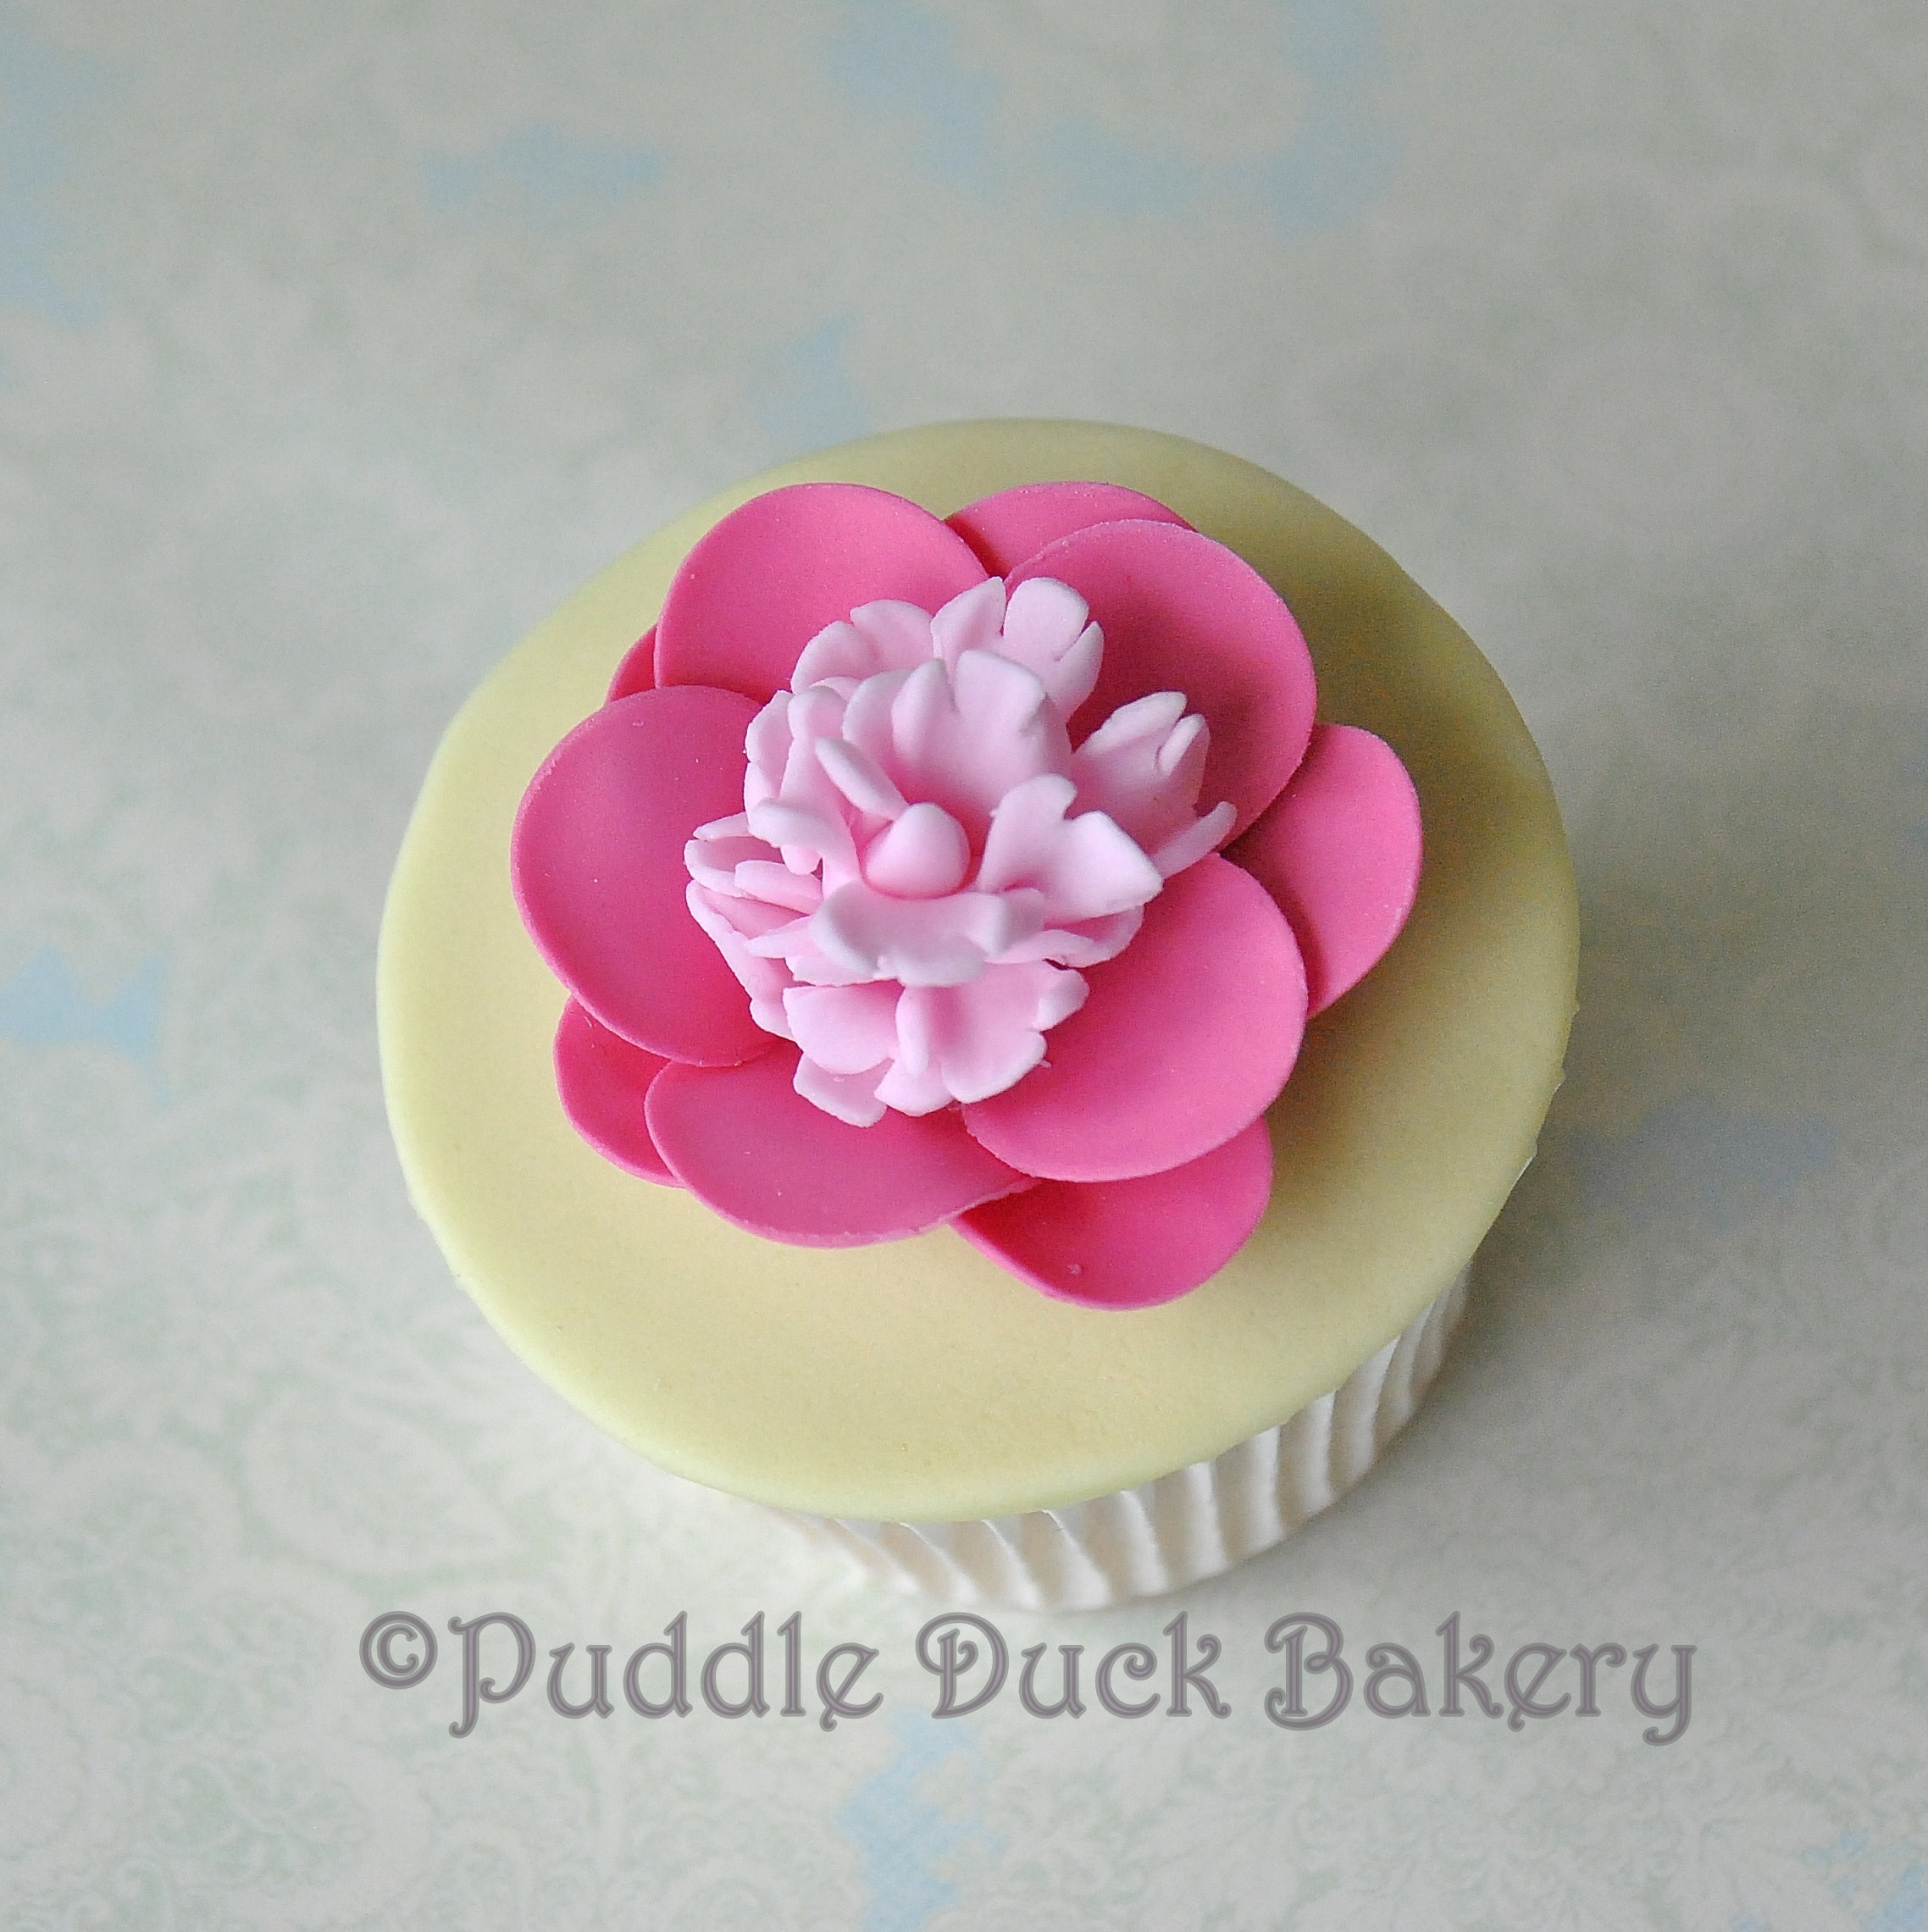 A pink flower on a cupcake